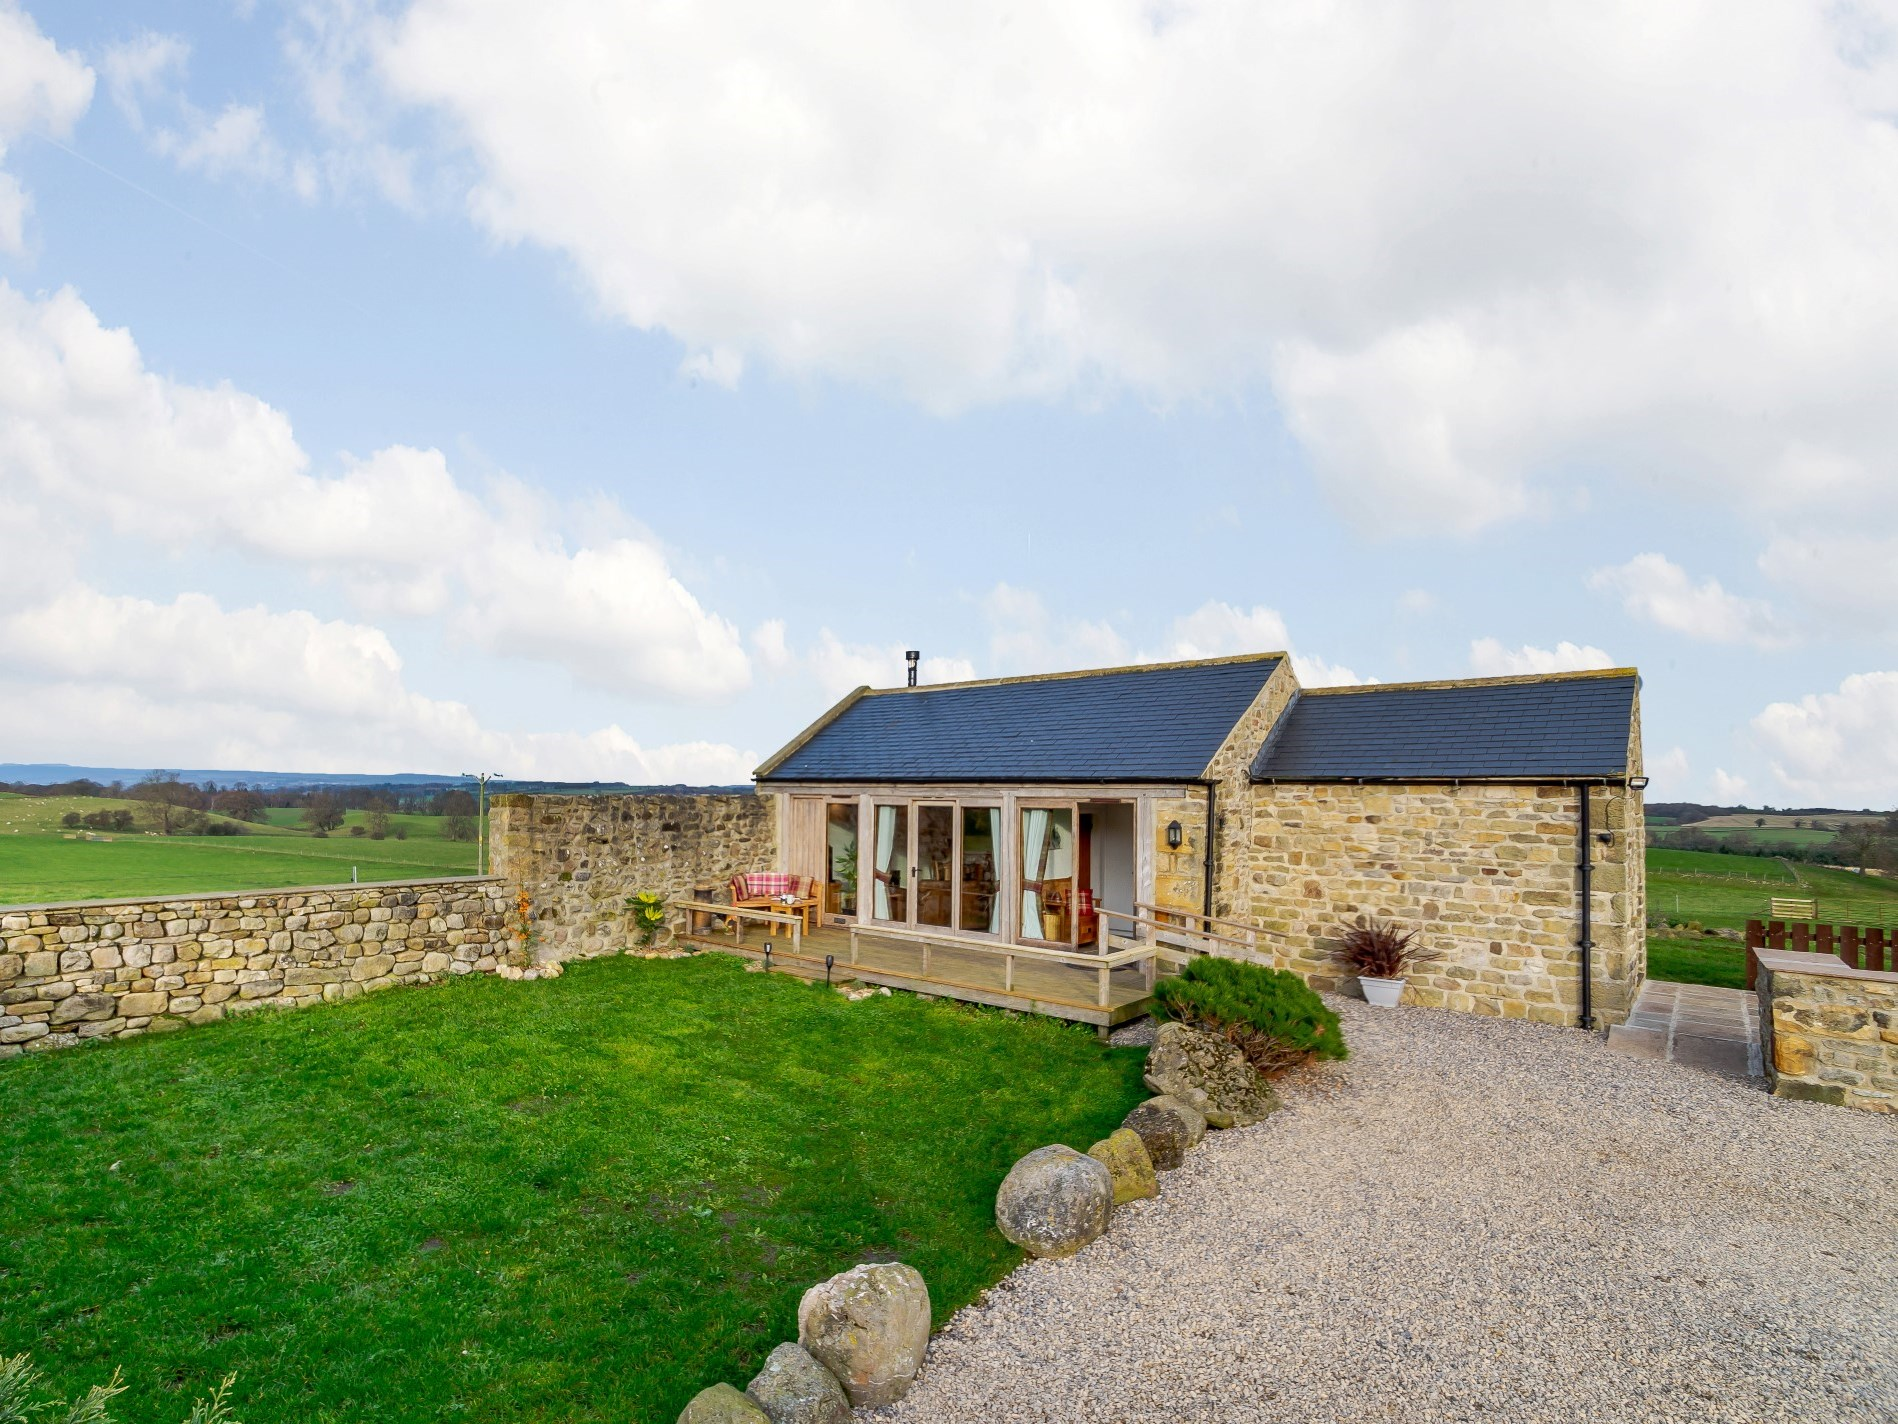 1 Bedroom Cottage in Jervaulx, Yorkshire Dales